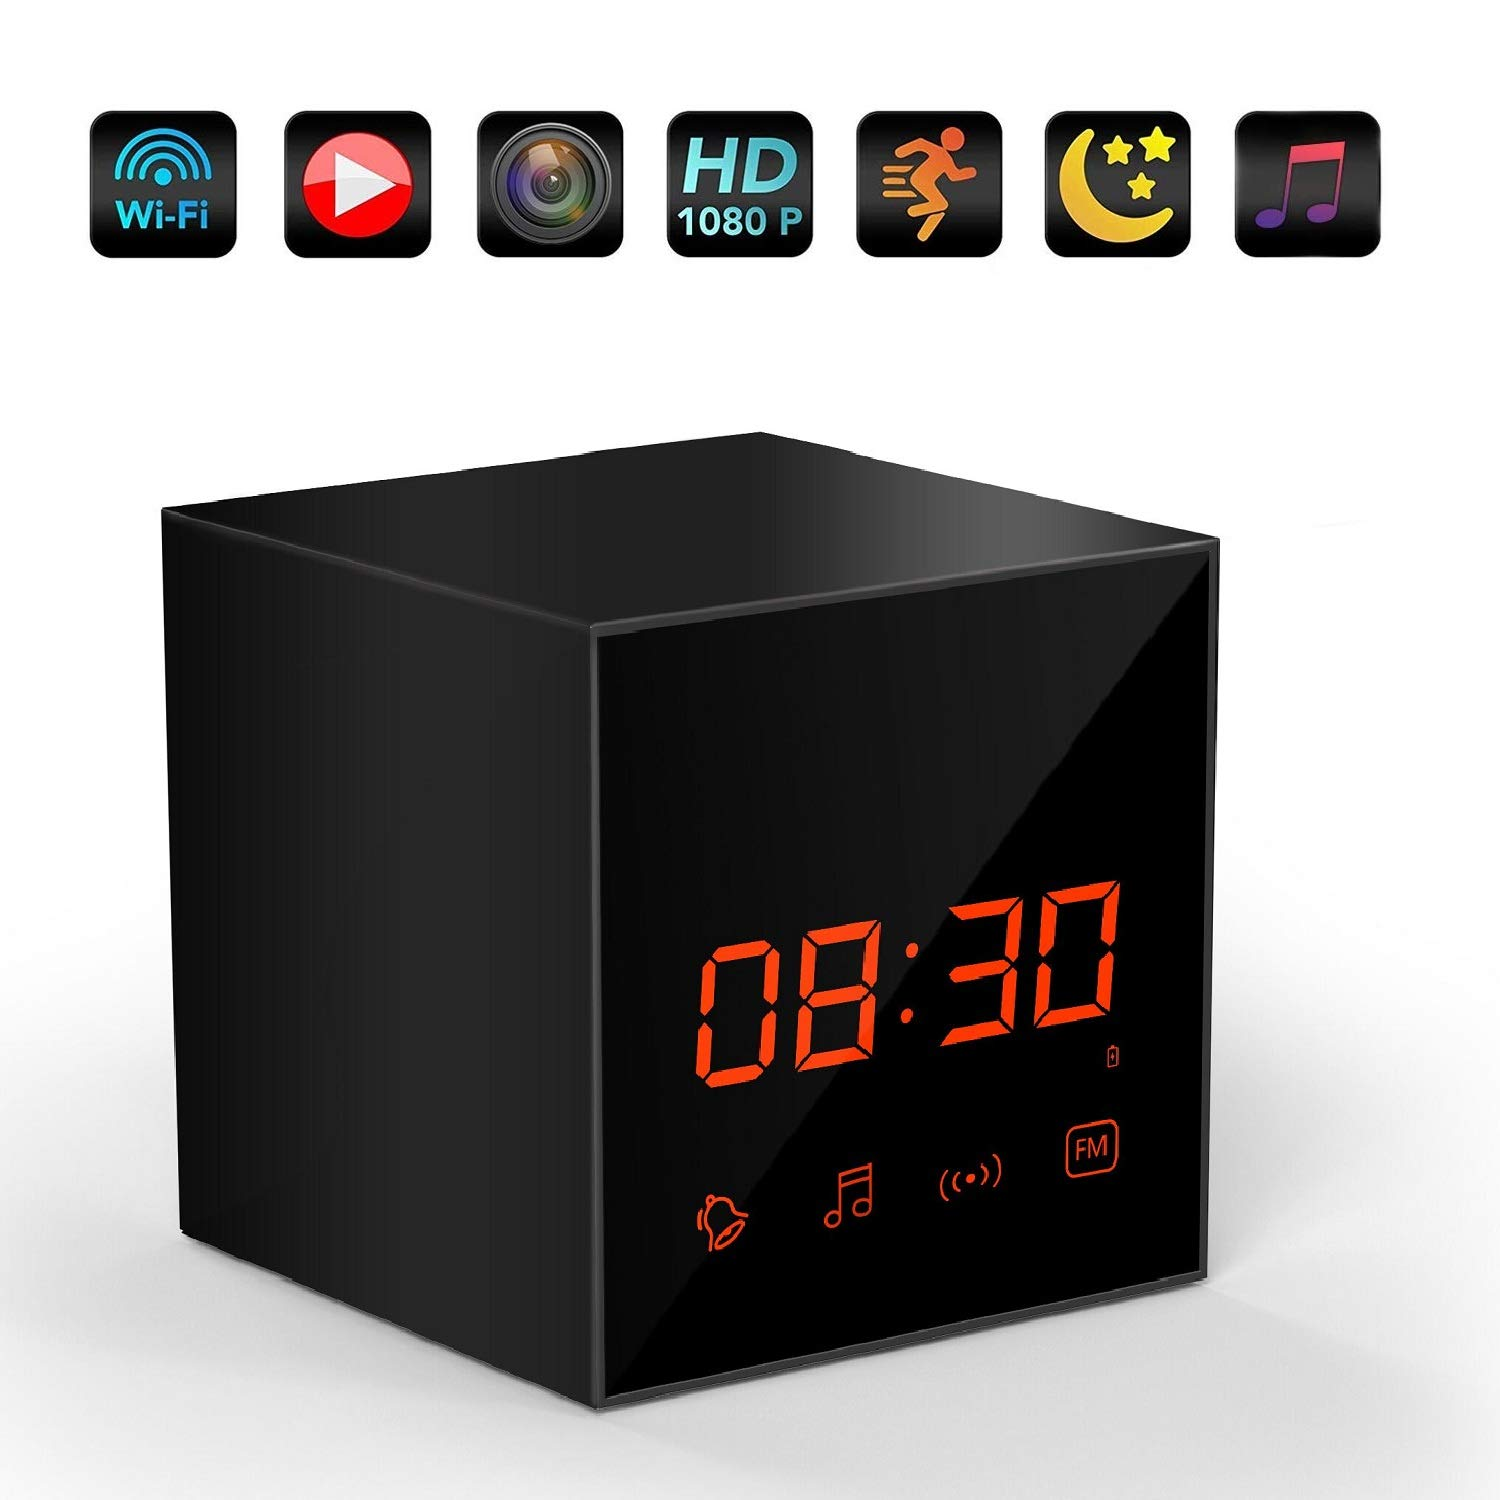 LIZVIE Hidden Camera 1080P WiFi Wireless Spy Clock Camera Bluetooth Speakers Wireless Mini Camera Video Recorder Motion Detection Real-Time View Nanny ...